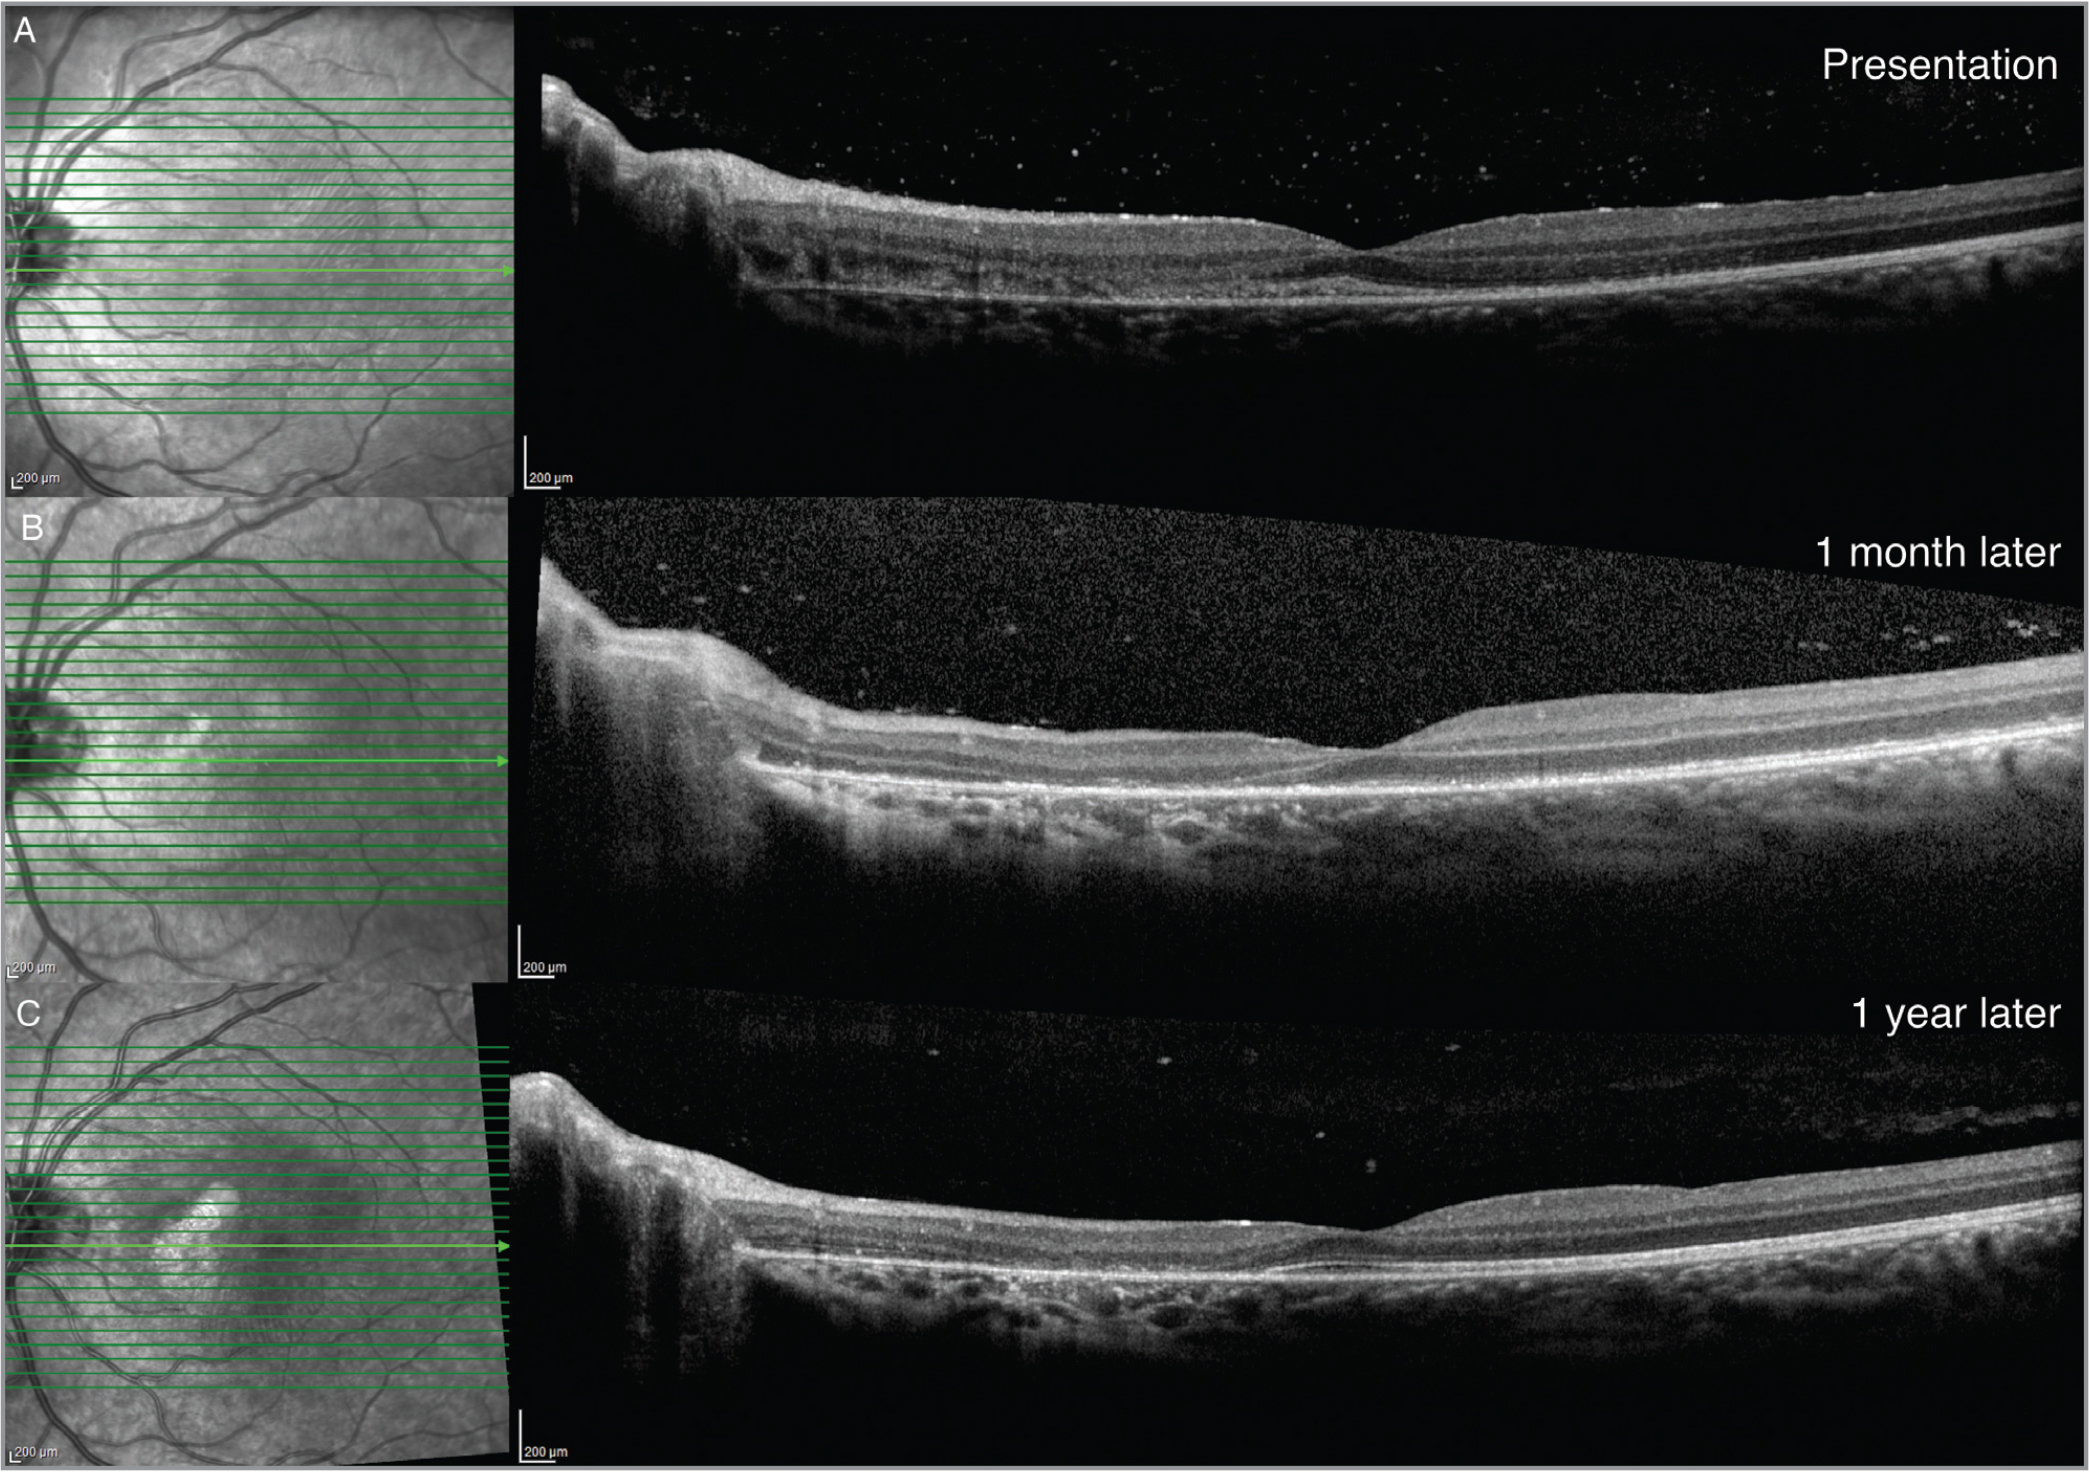 Case 1: Spectral-domain optical coherence tomography (A) at presentation showing loss of reflection in the cone outer segment tips, inner segment/outer segment junction, and external limiting membrane (B) 1 month after injury and (C) 1 year later showing persistent outer retinal defects.